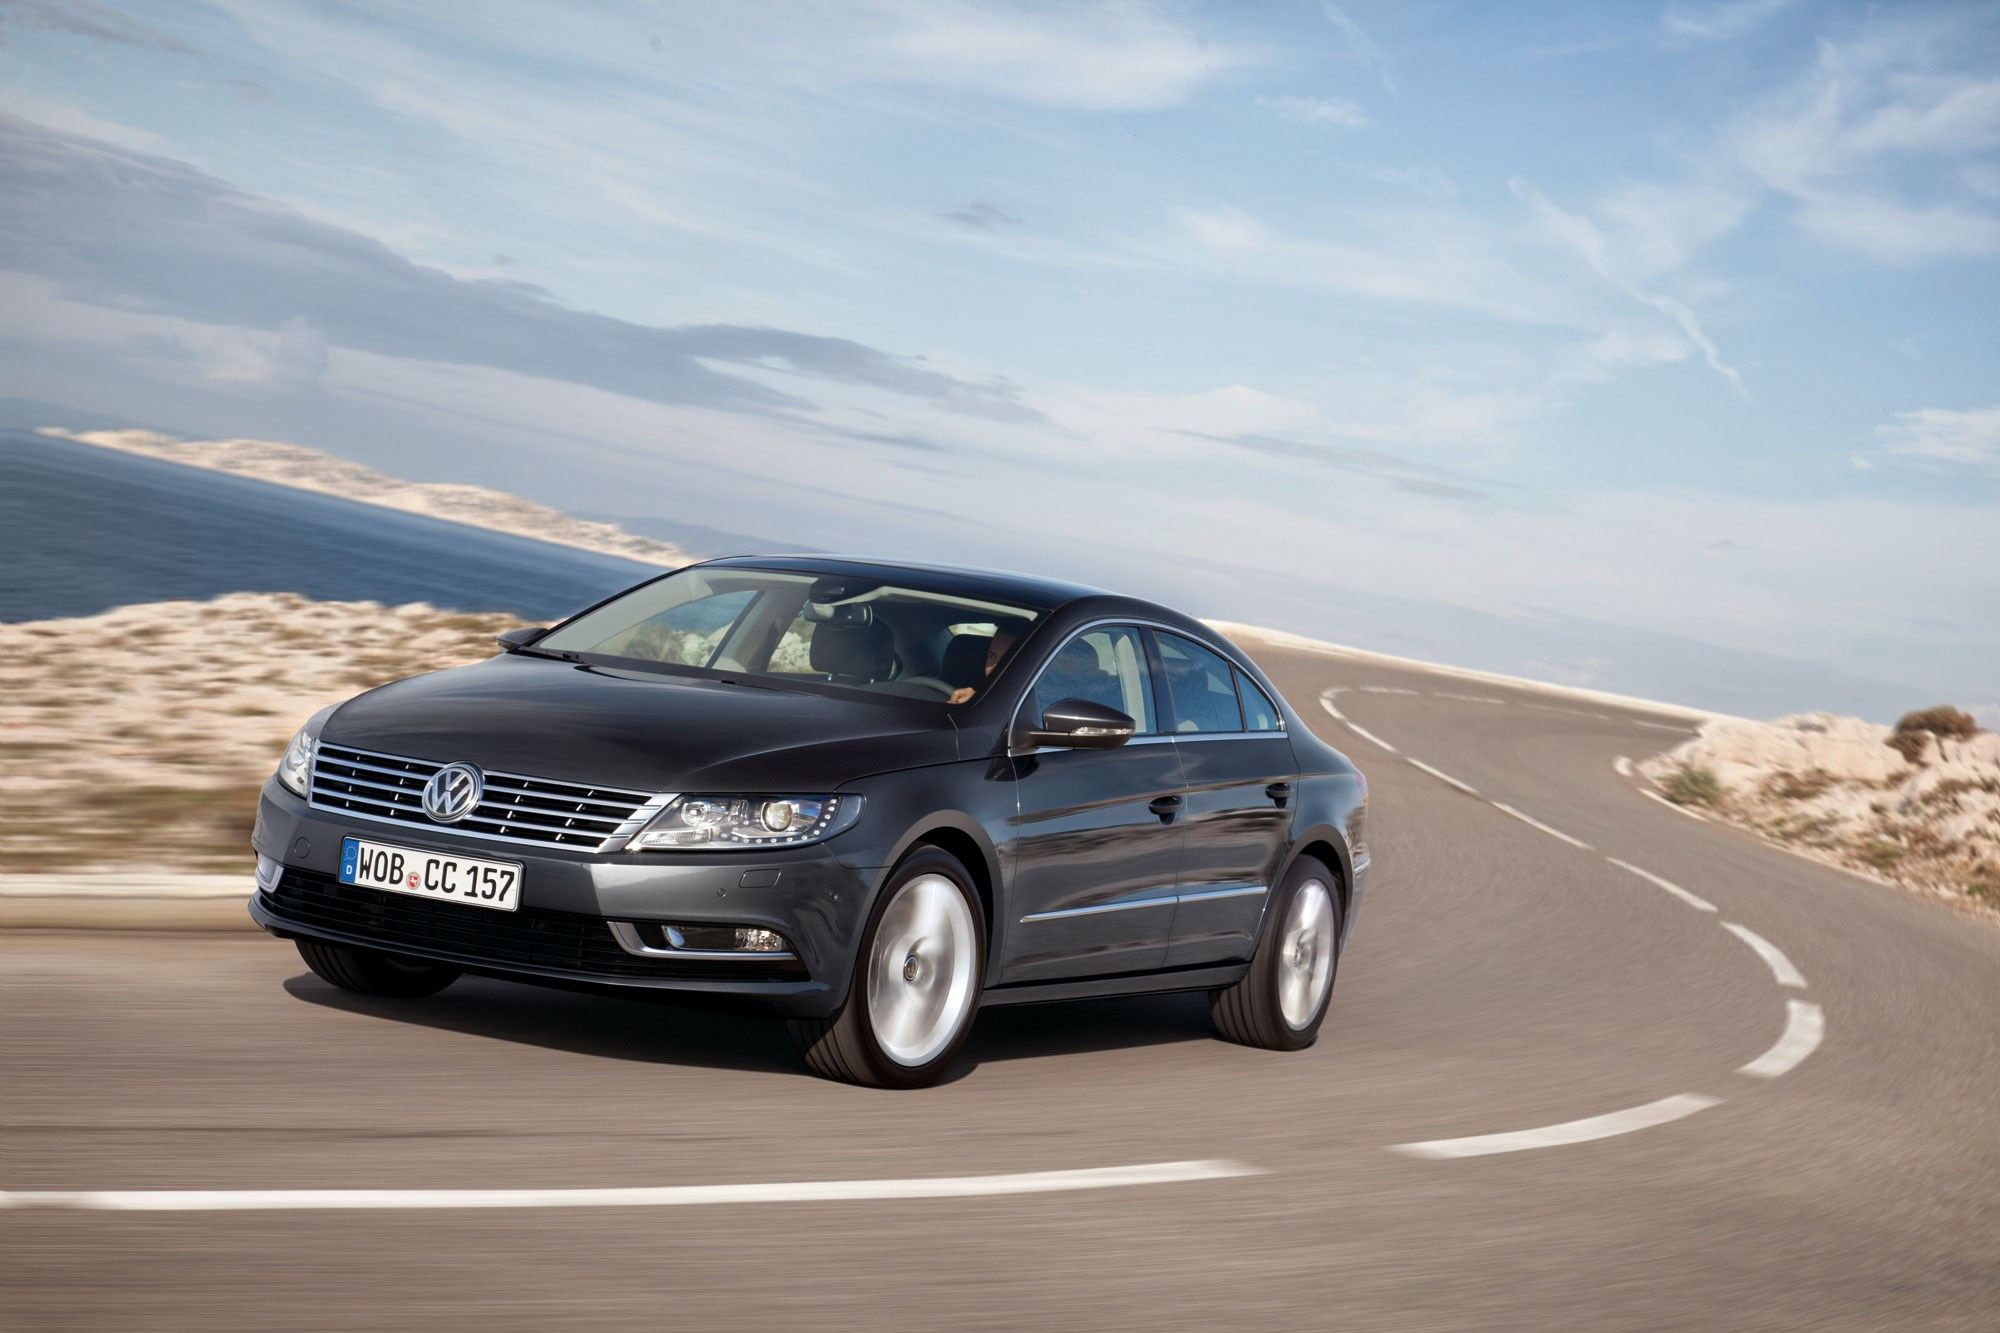 vw cc 2 0 tdi 177 dsg 2015 review by car magazine. Black Bedroom Furniture Sets. Home Design Ideas